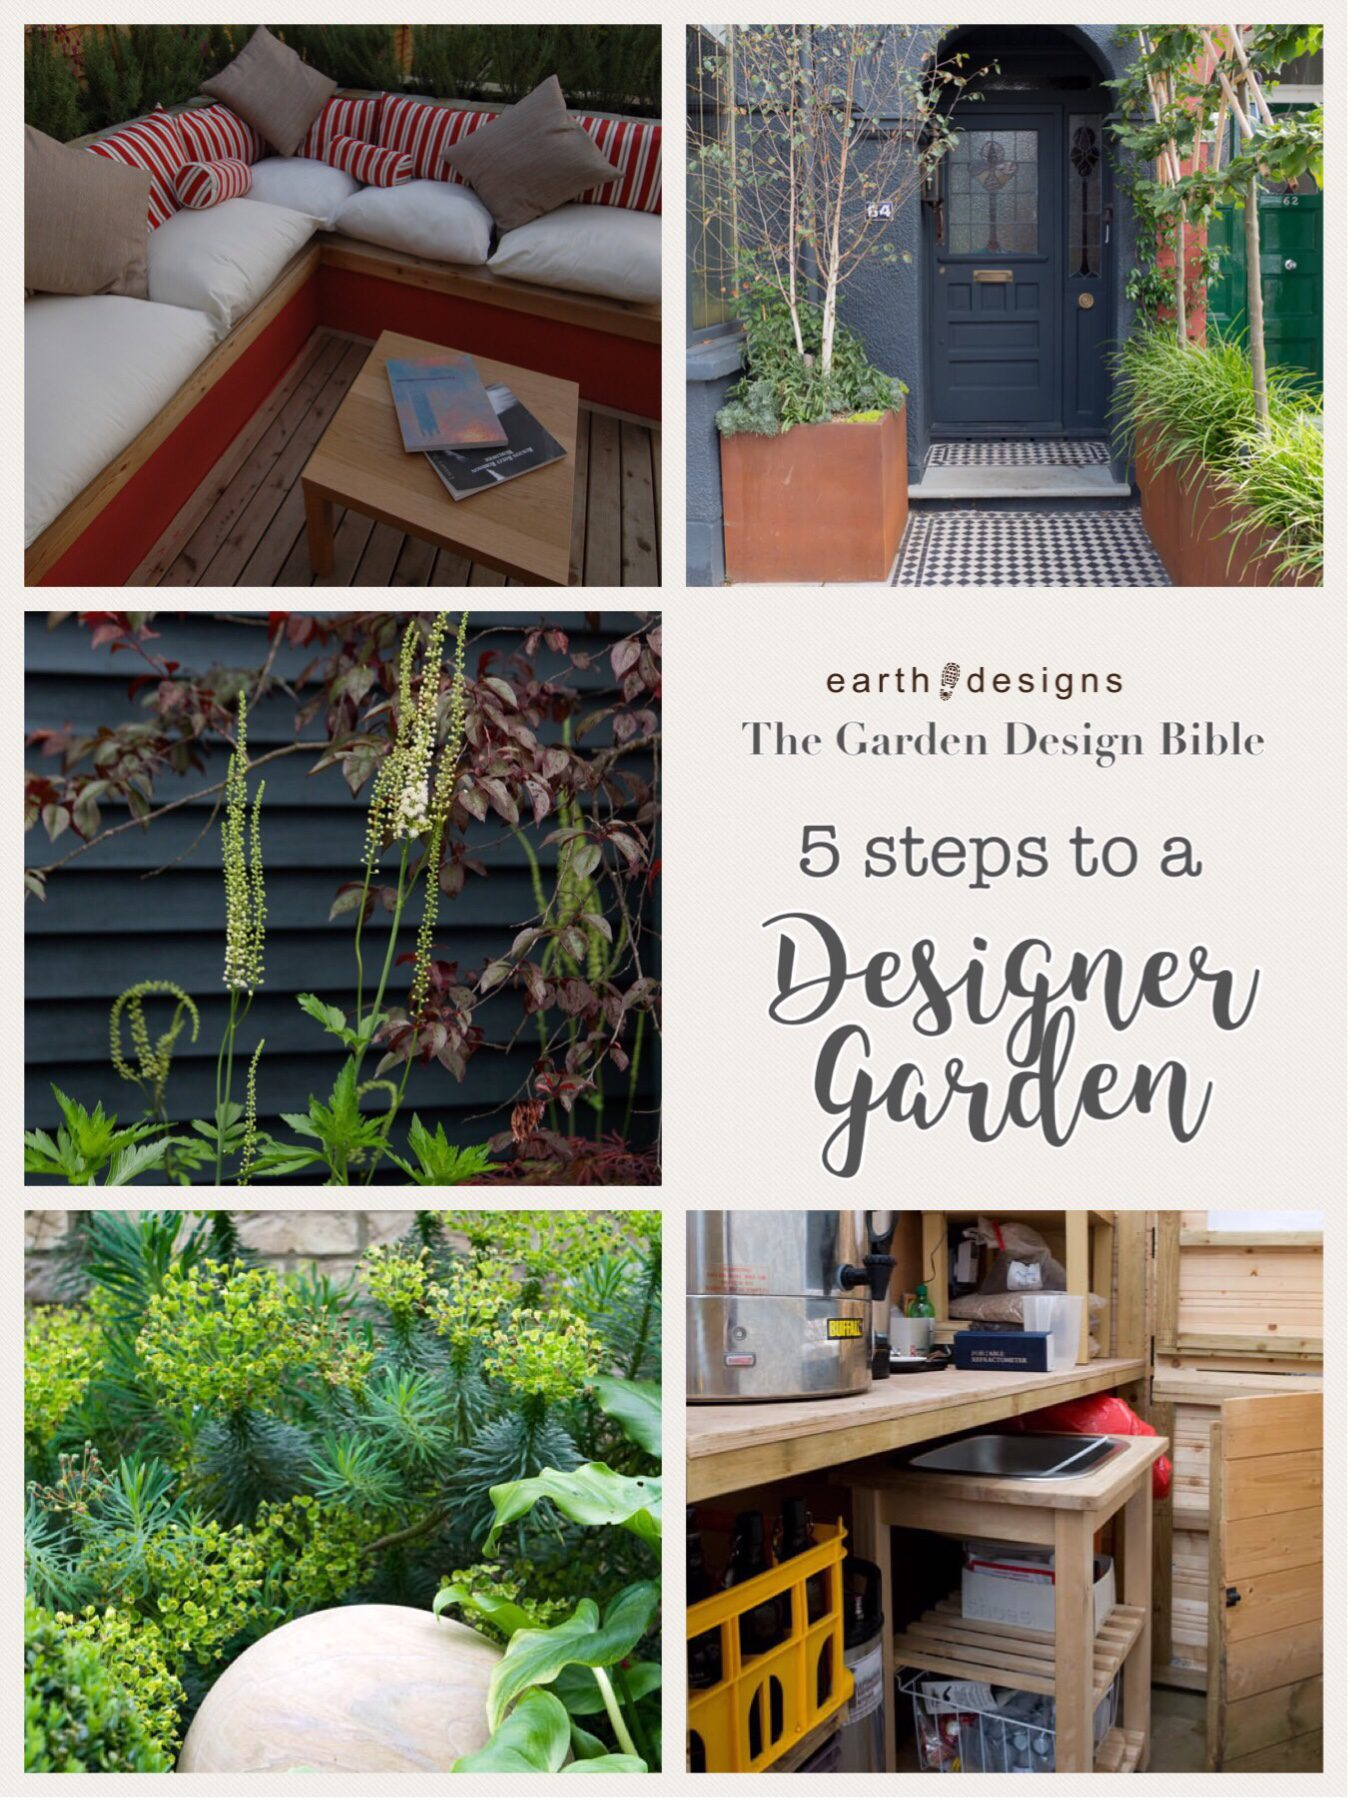 Successful garden design - top tips from Earth Design